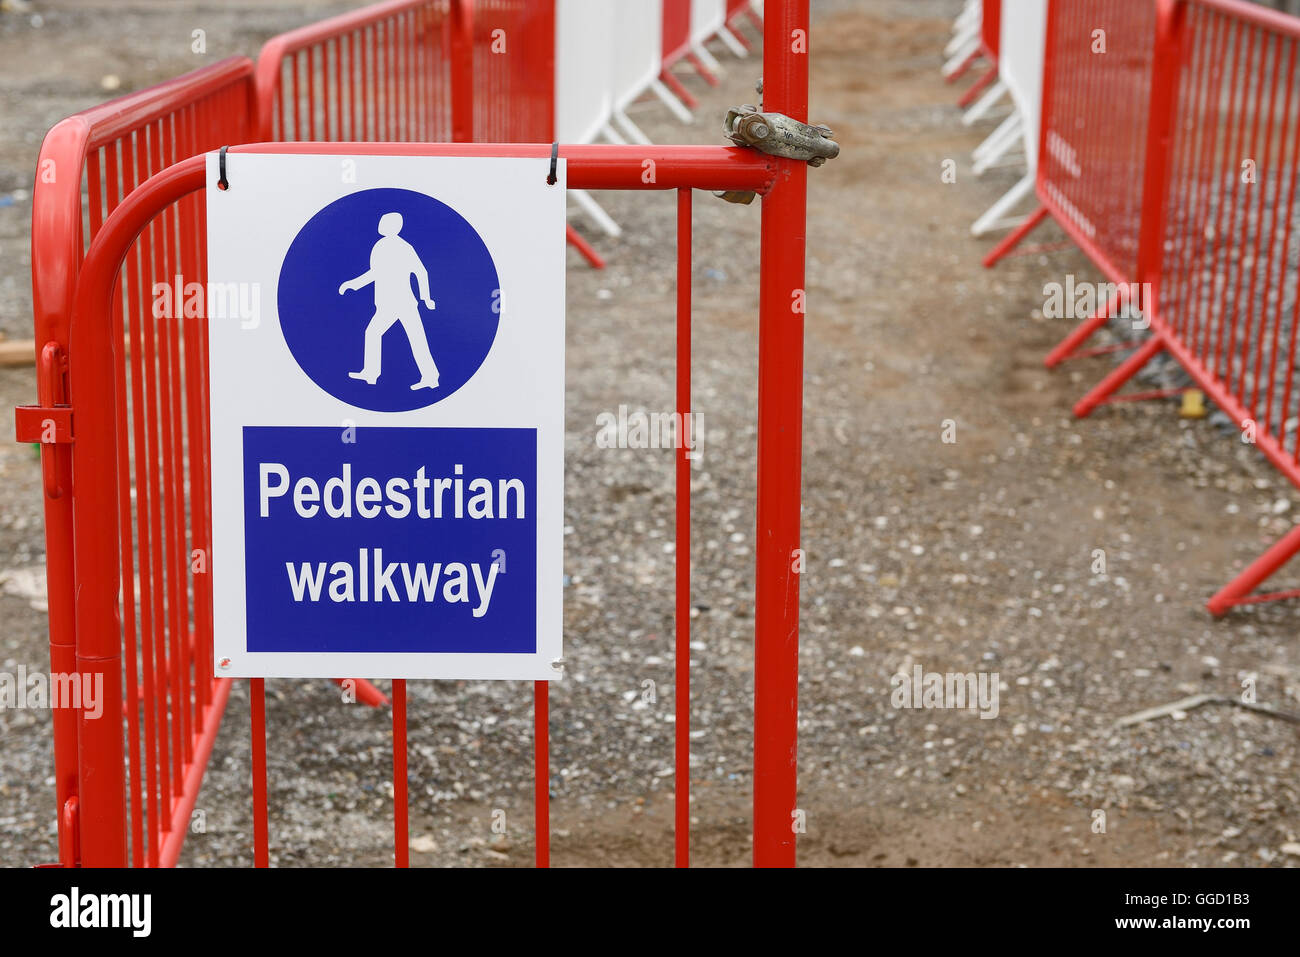 Pedestrian walkway sign and barriers on a UK construction